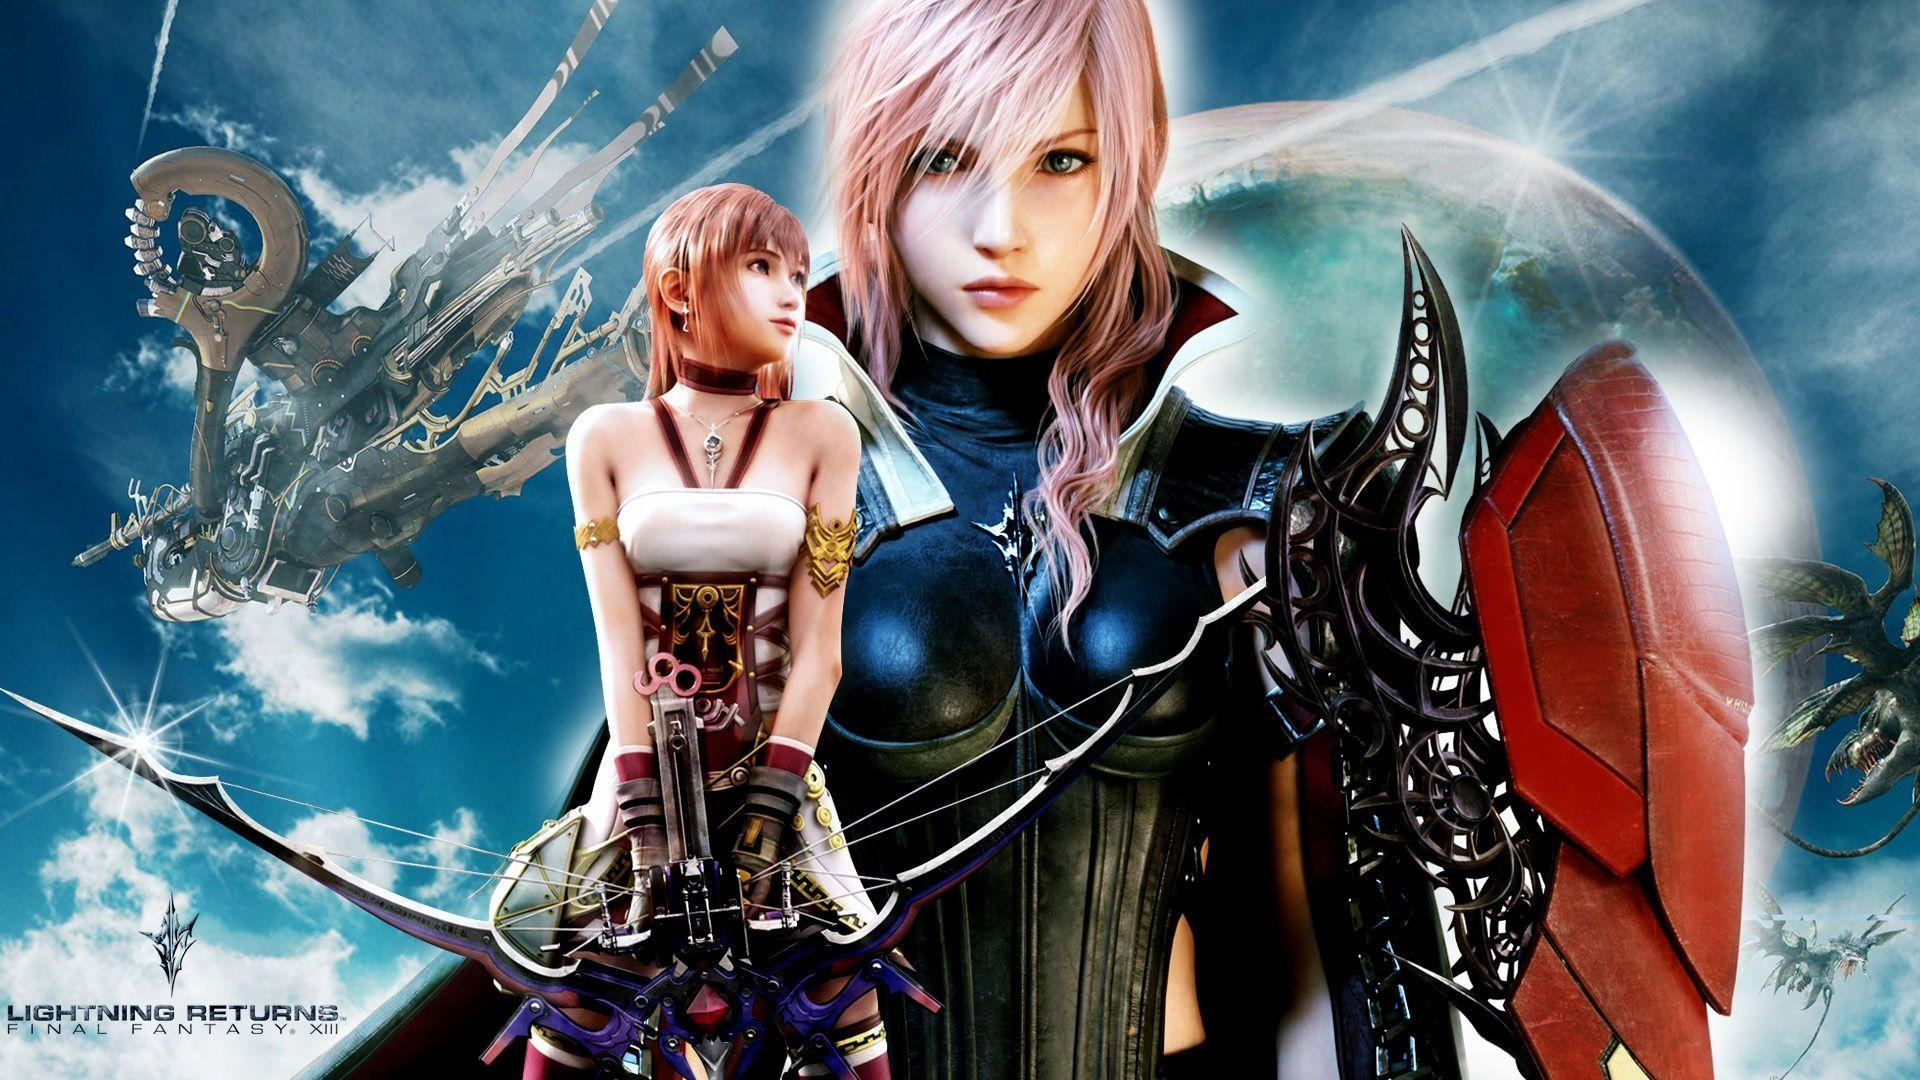 Free Download Final Fantasy Xiii Serah Sexy Swimsuit Game Mania Club Wallpapers